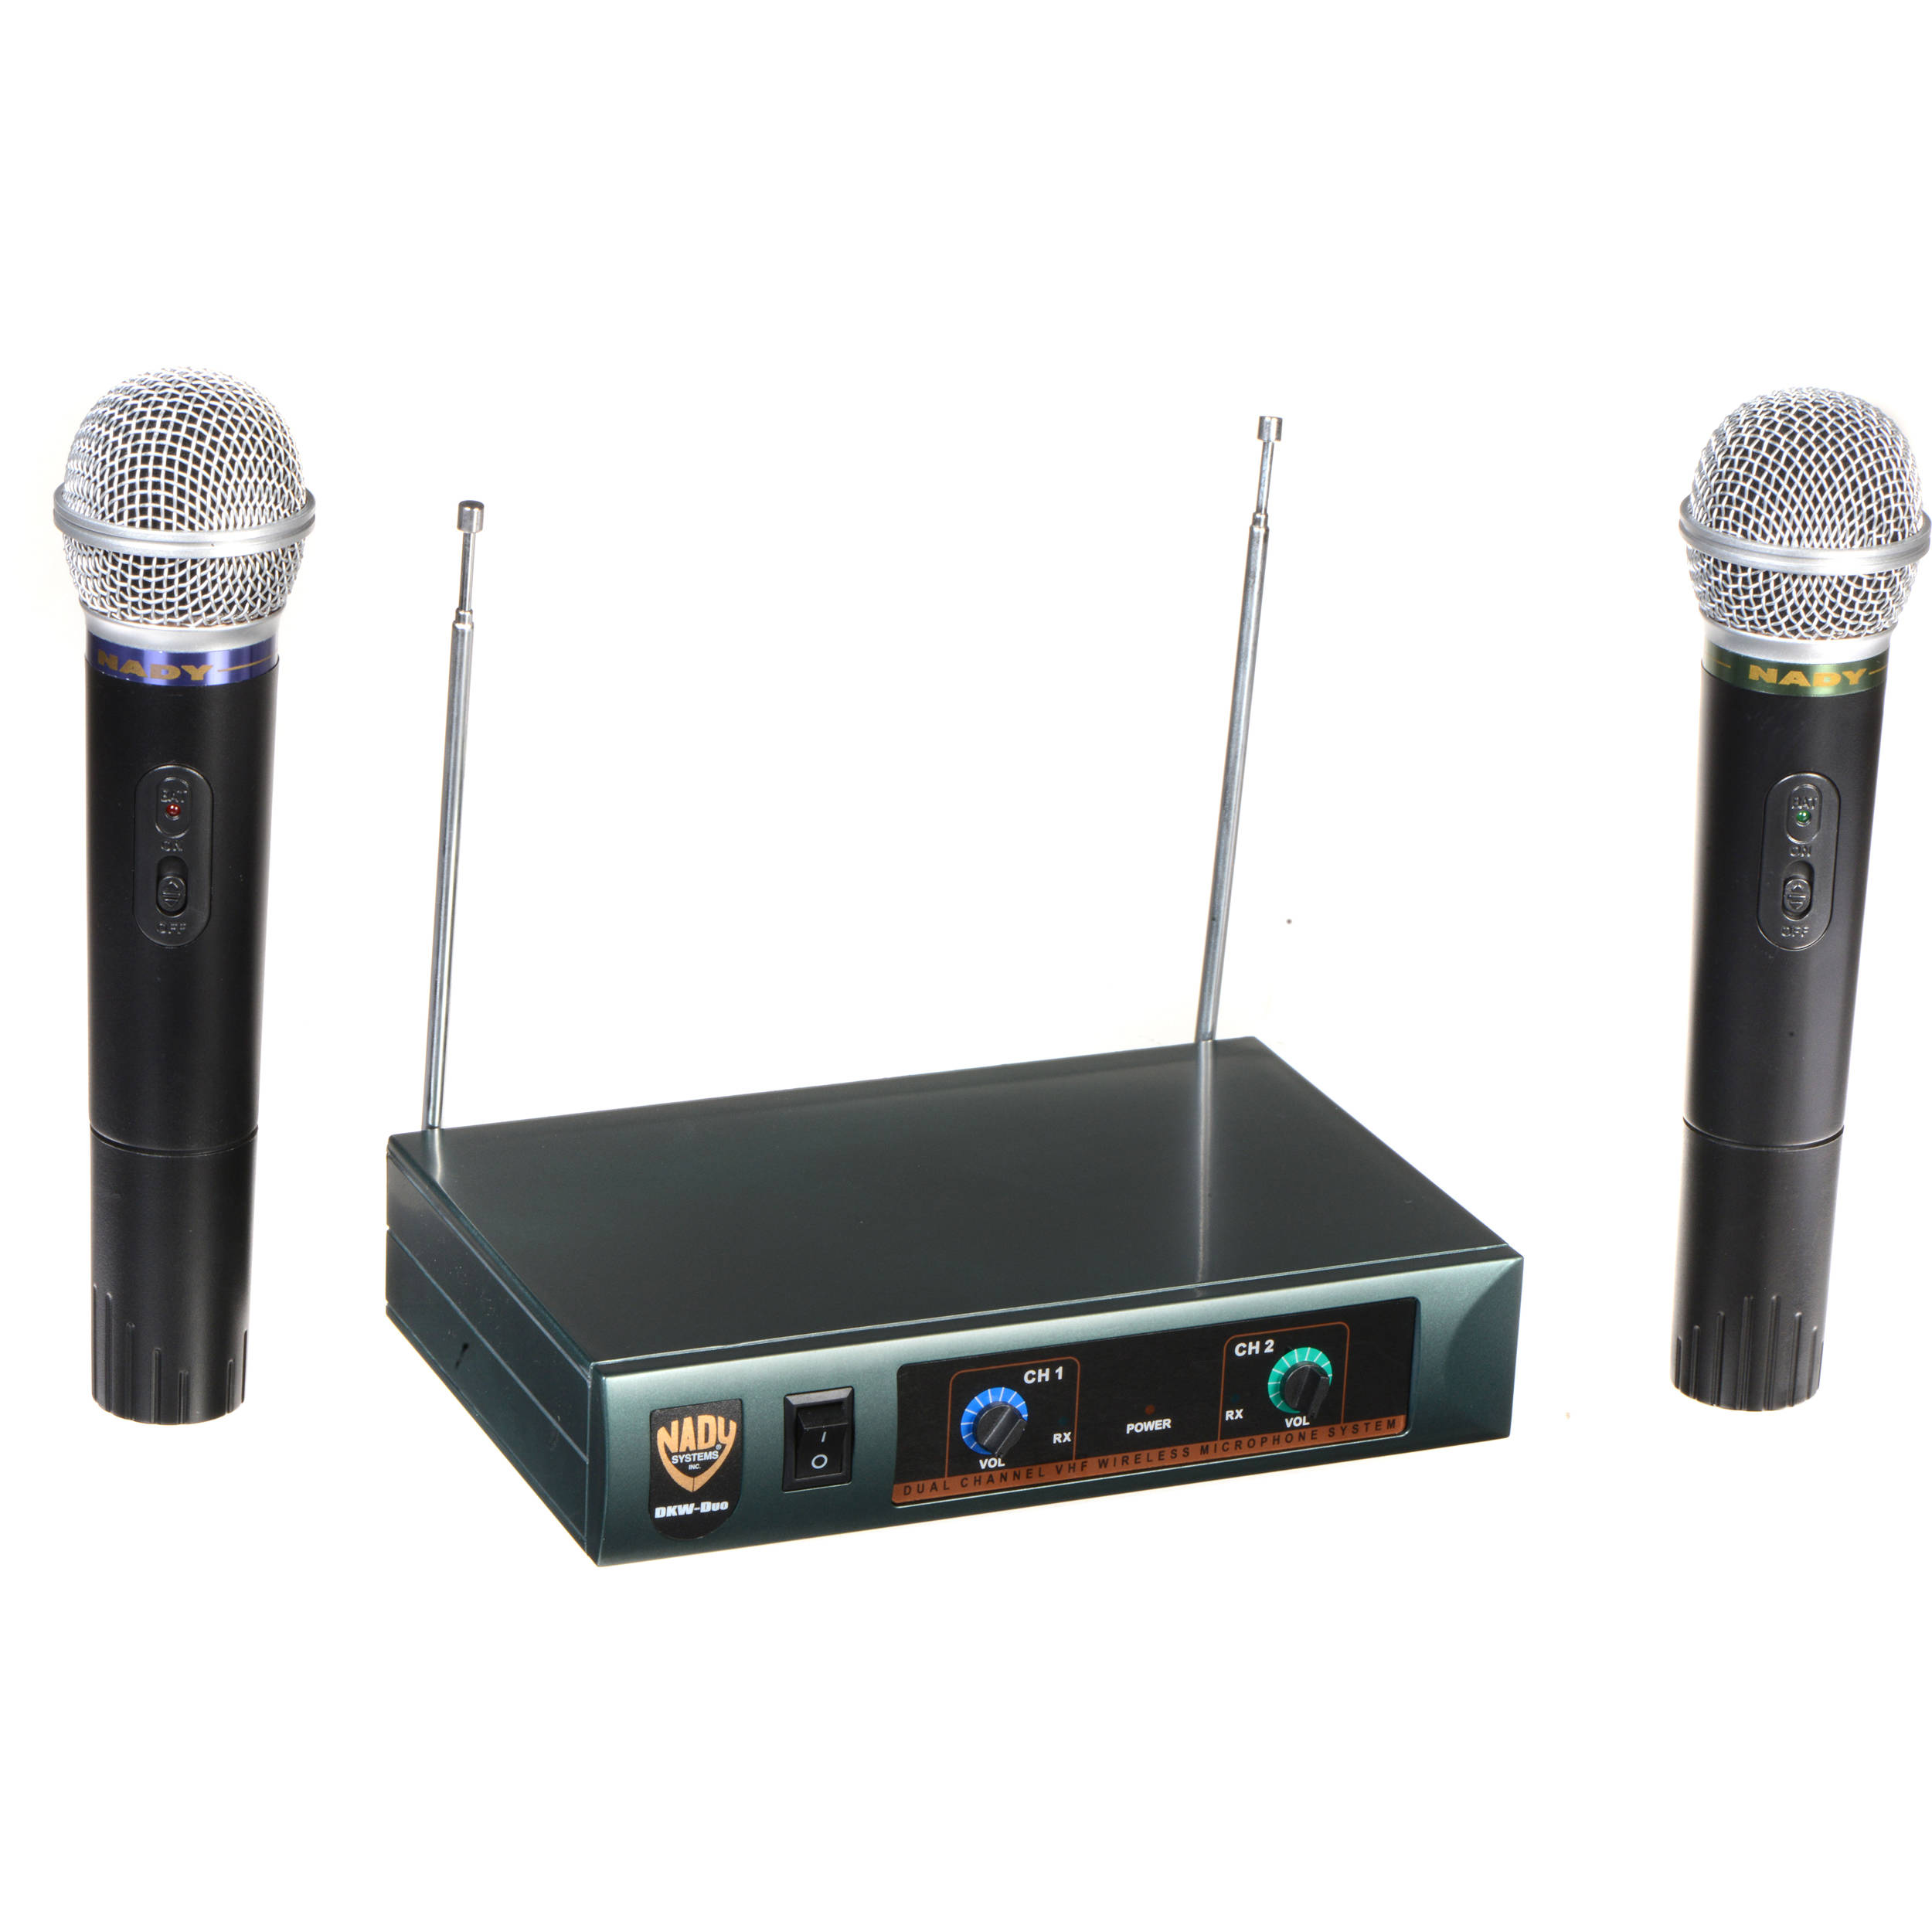 Nady DKW-Duo Dual HT Handheld Mics Wireless Microphone System